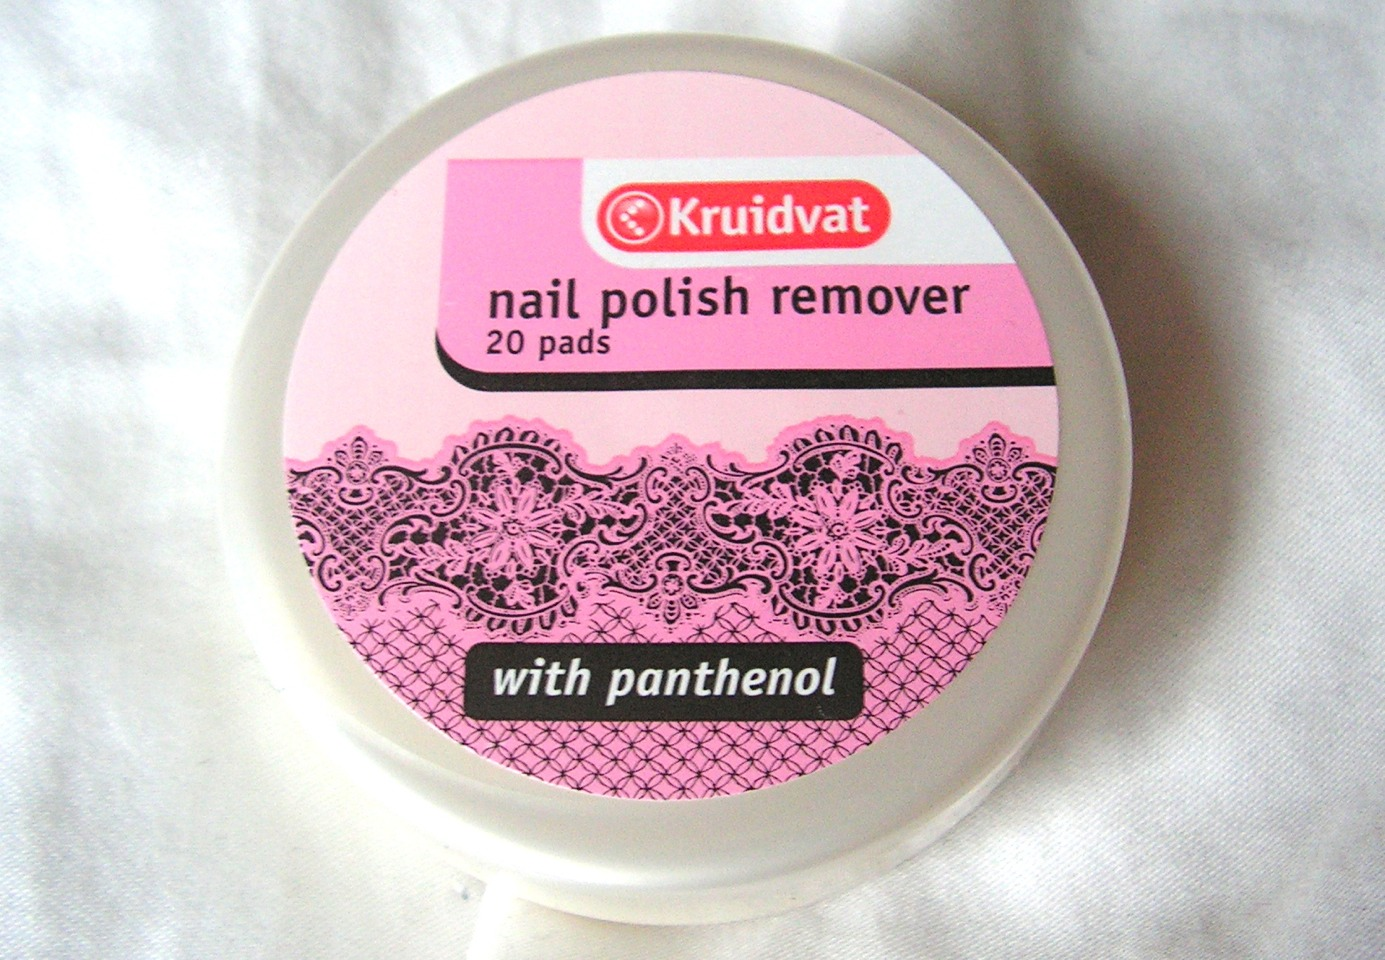 First get nail-polish remover or the wipes